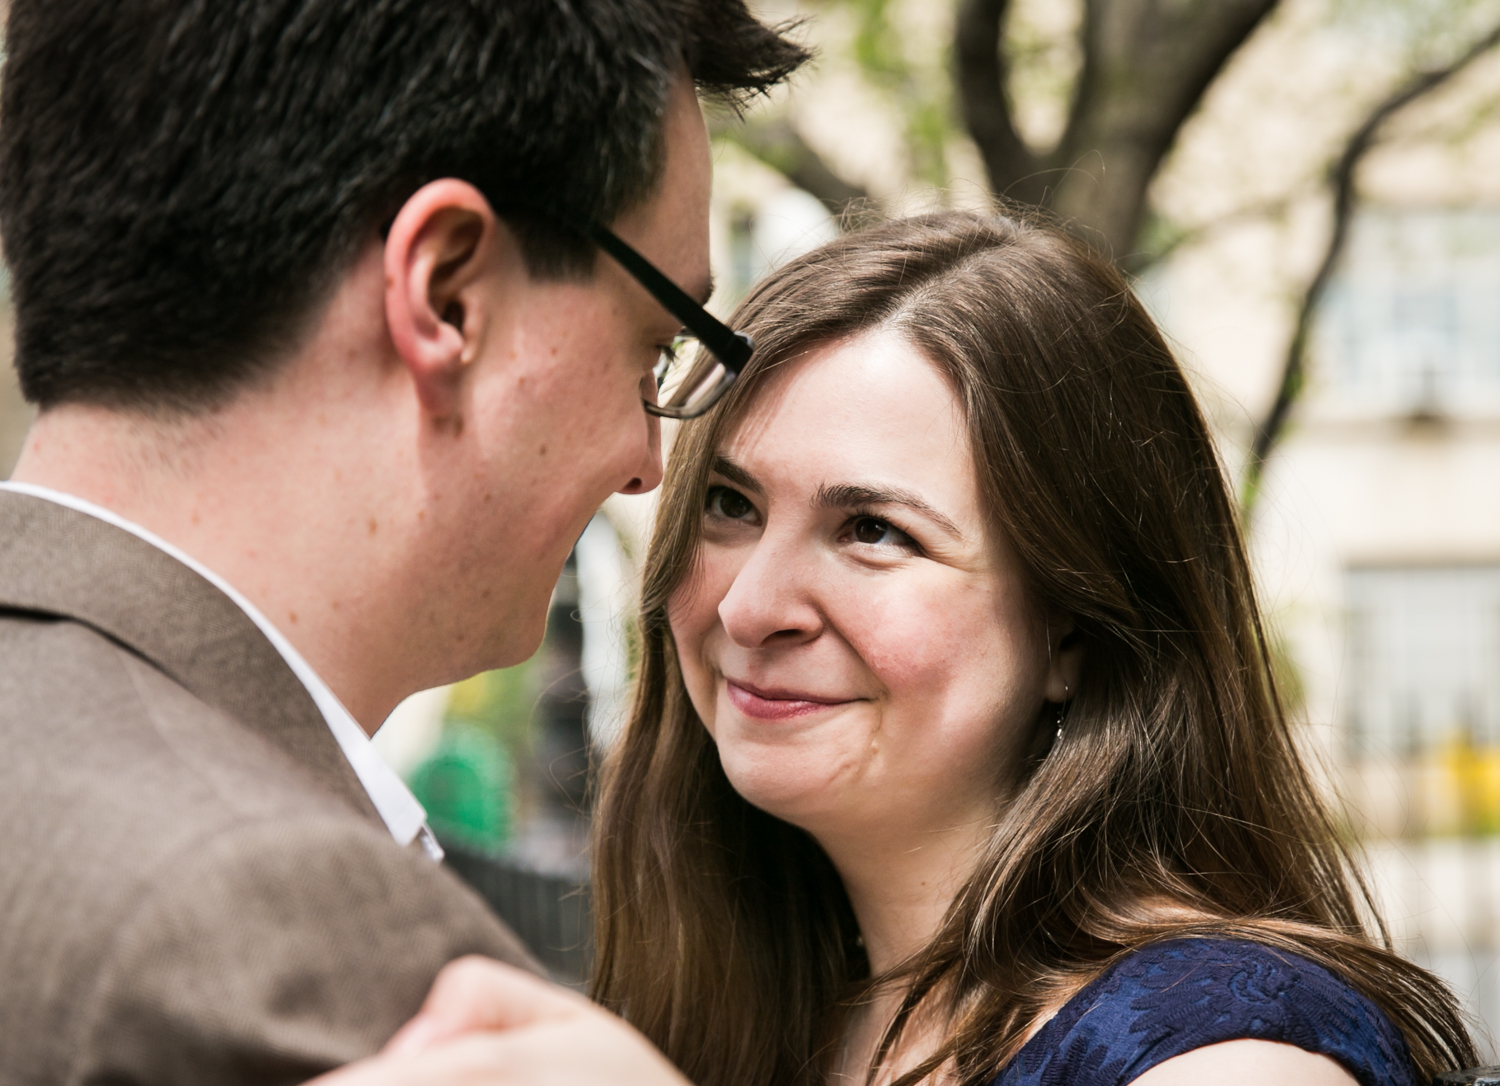 Brooklyn Promenade engagement photos of woman looking at man wearing glasses